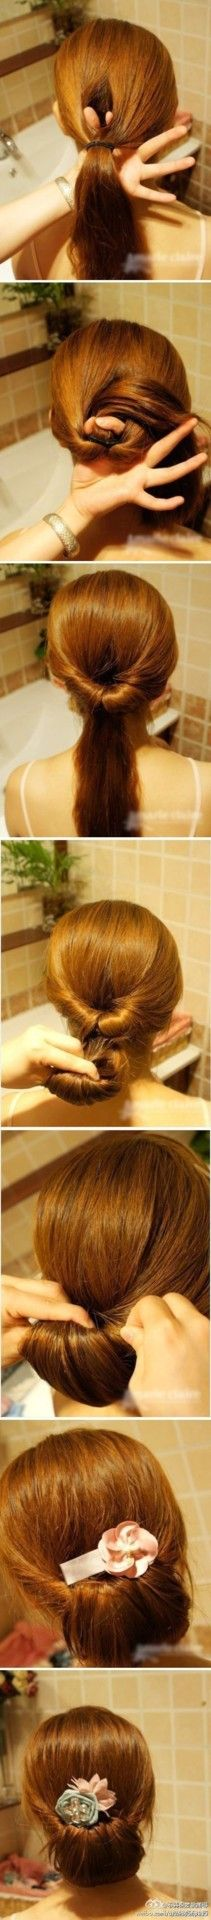 cute, casual updo idea